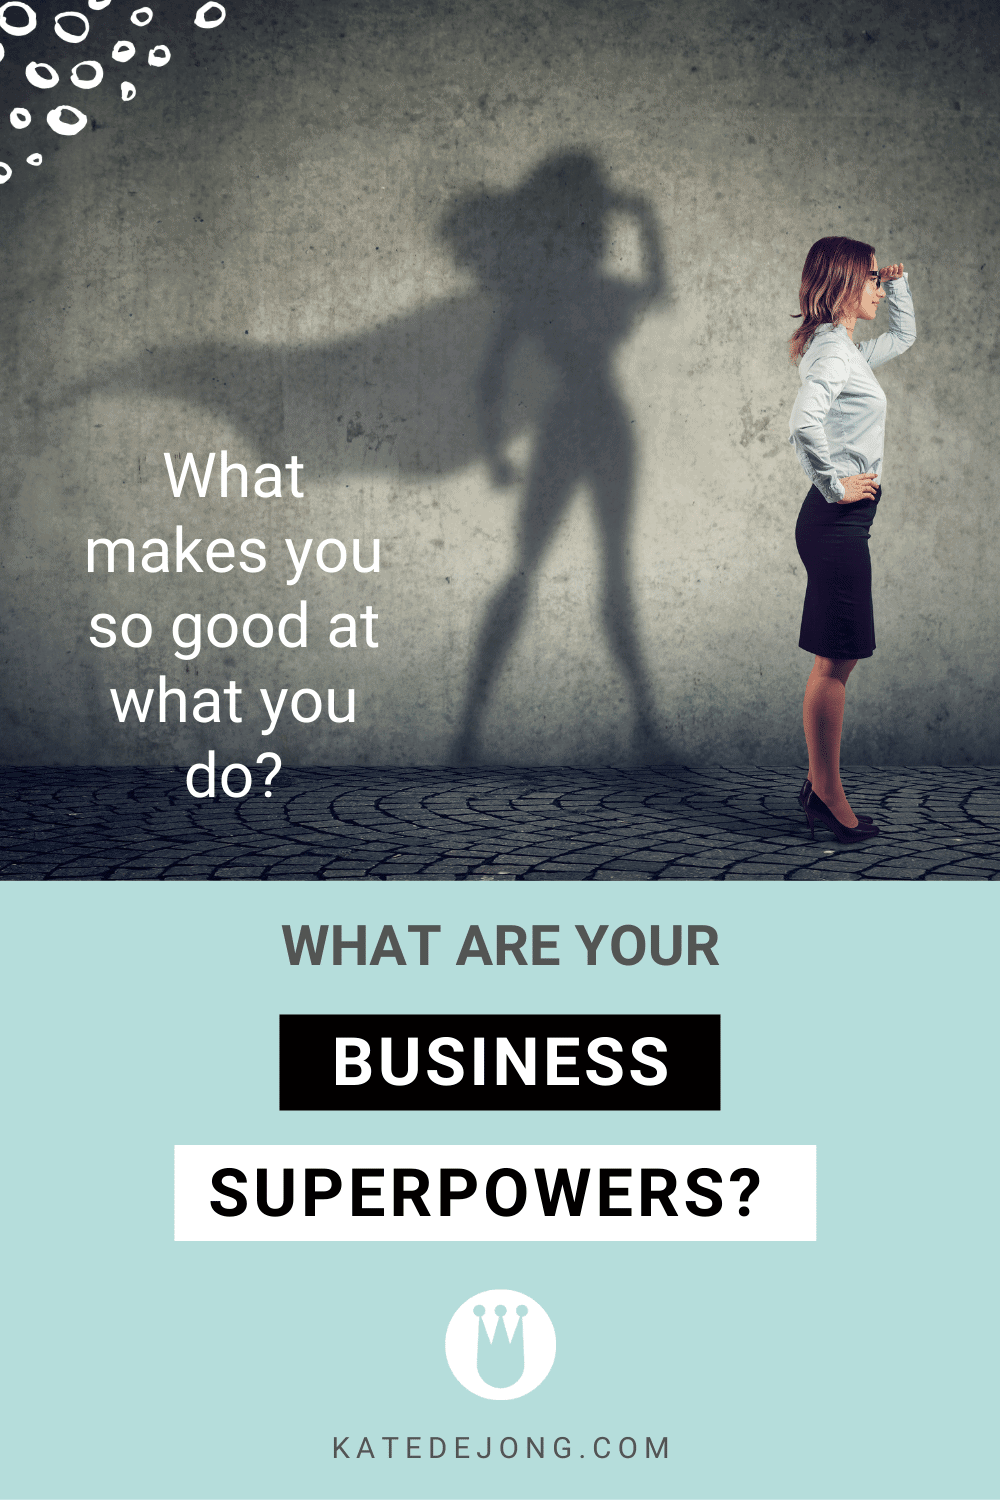 Your prospects won't know why they should choose you over your competitors unless you tell them. Discover how you can easily articulate your business brilliance through using the Business Superpowers technique. Read on to find out how! #fempire #smallbusiness #businesscoach #businesscoachforwomen #entrepreneur #businessgrowth #growthstrategies